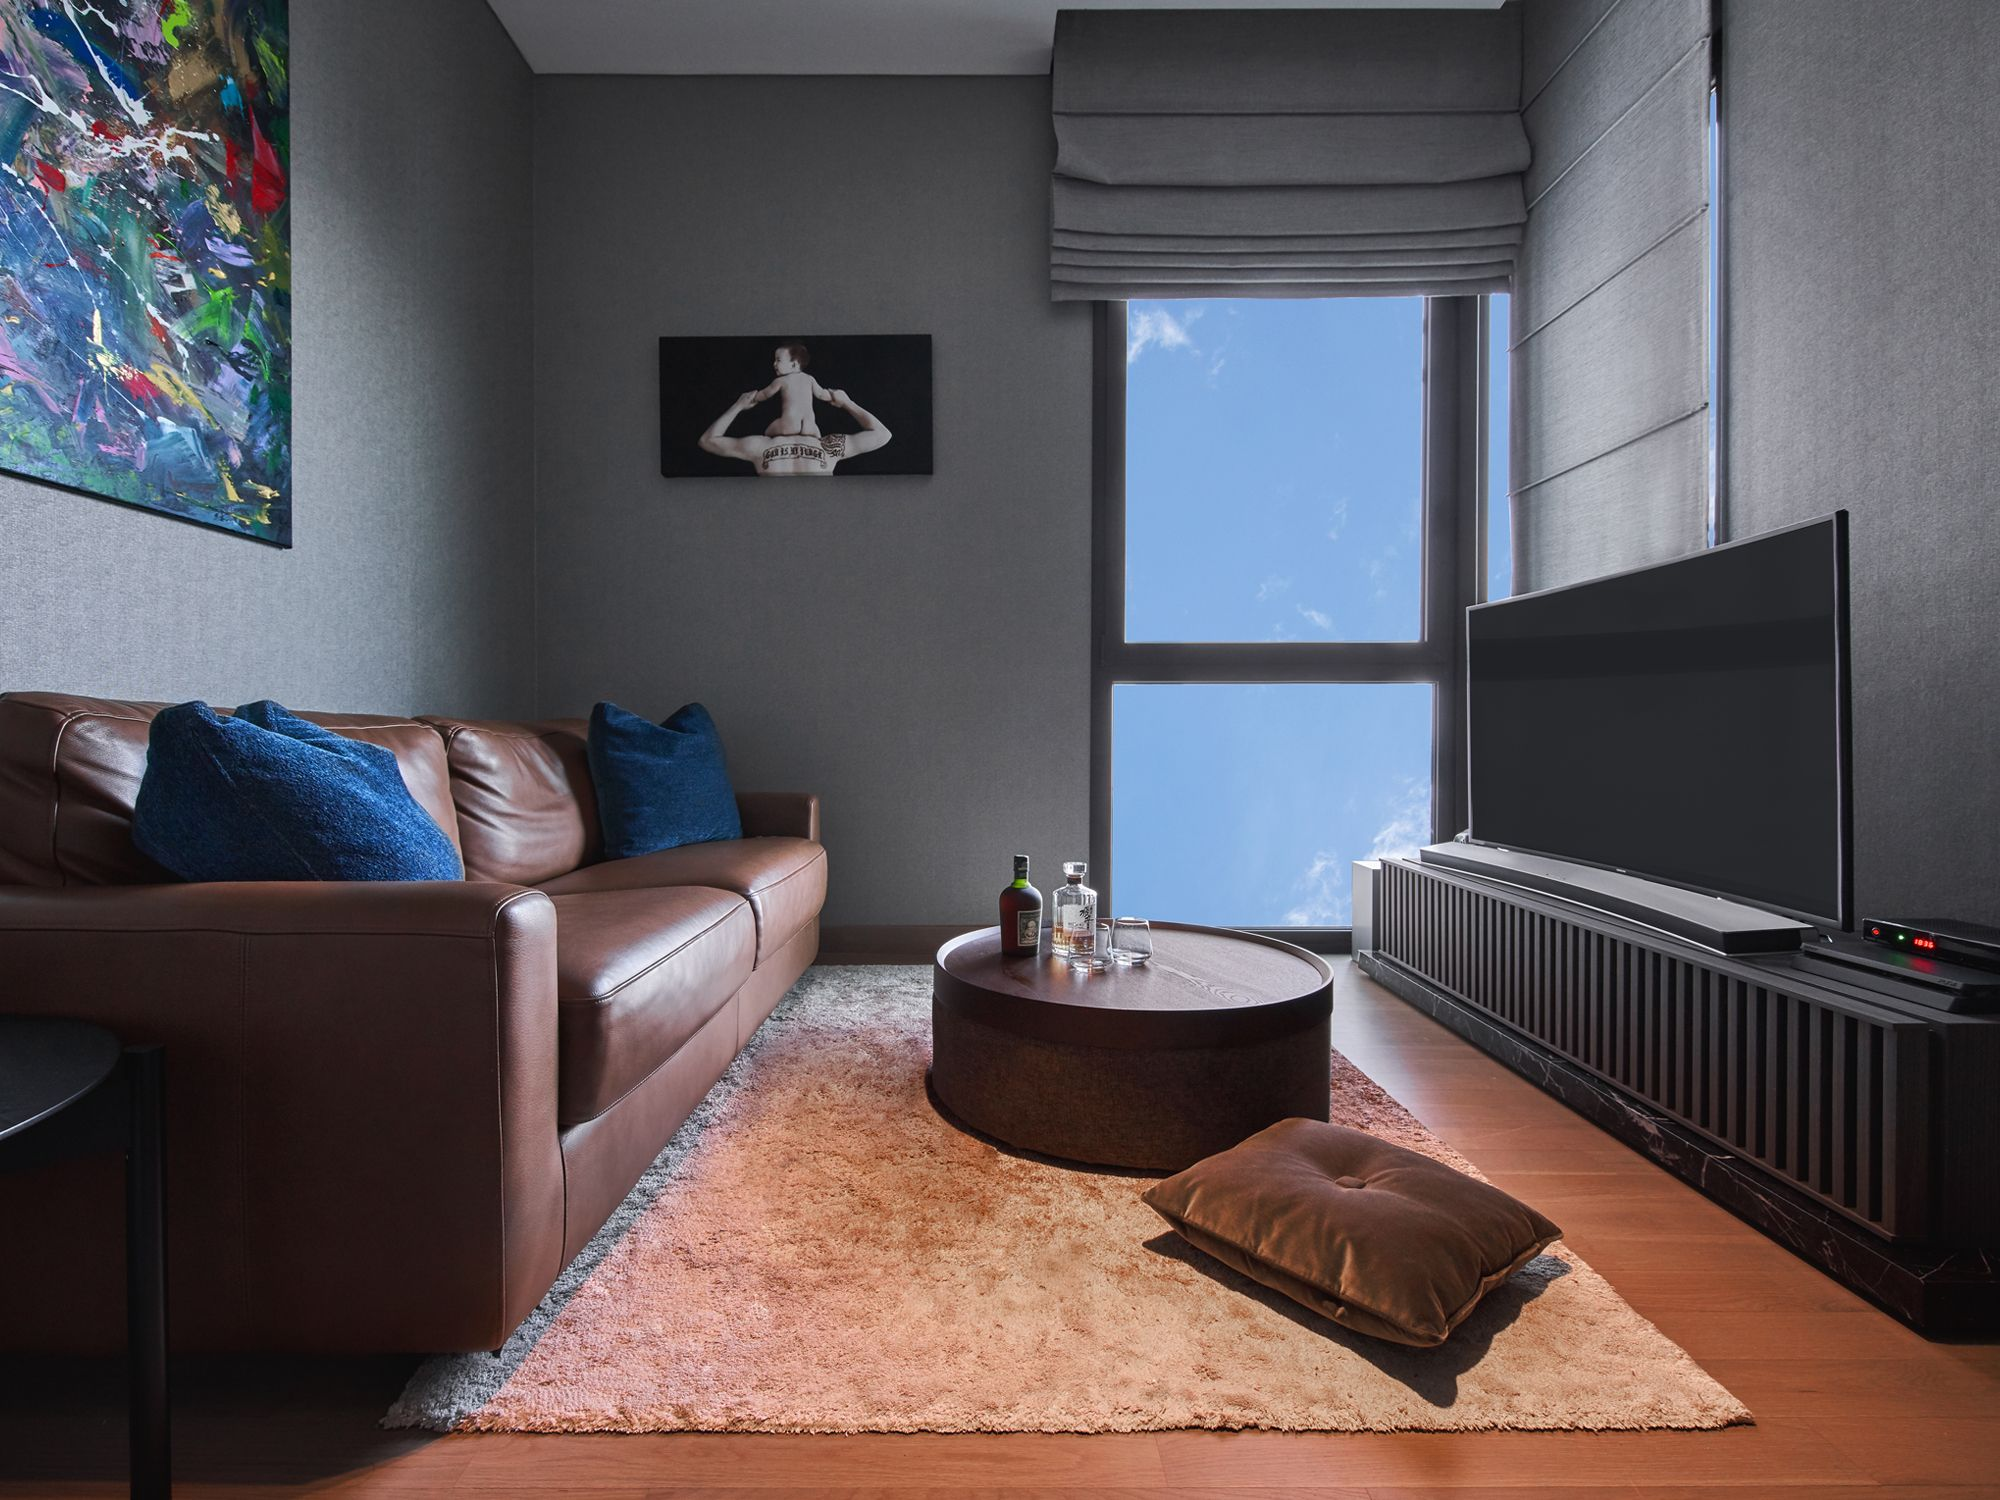 A mix of leather and other plush textures contributes to the cosy atmosphere in this lounge area